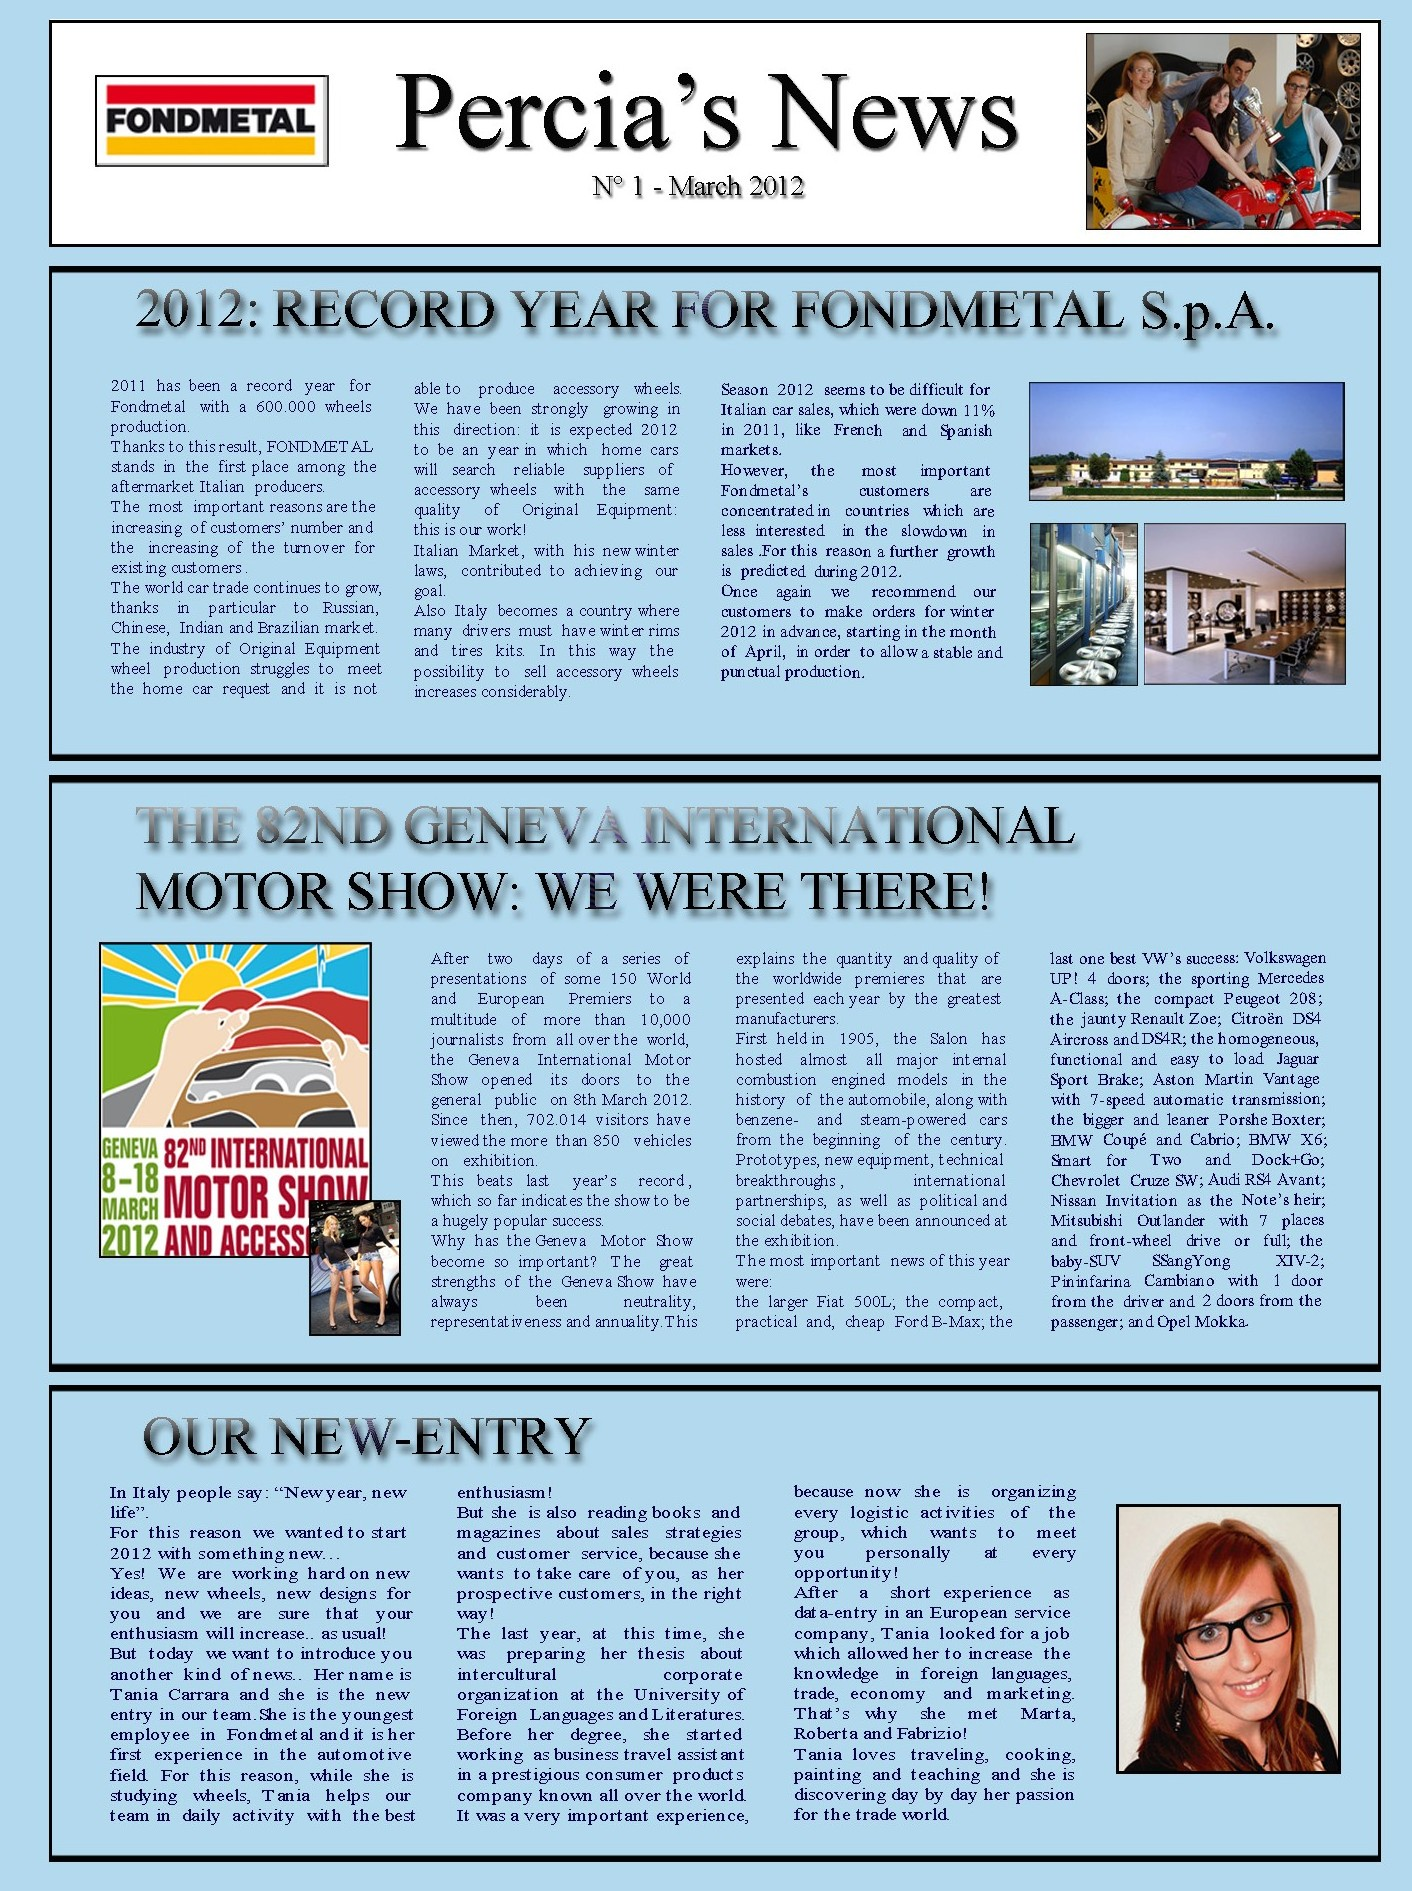 PERCIA'S NEWS MARCH 2012